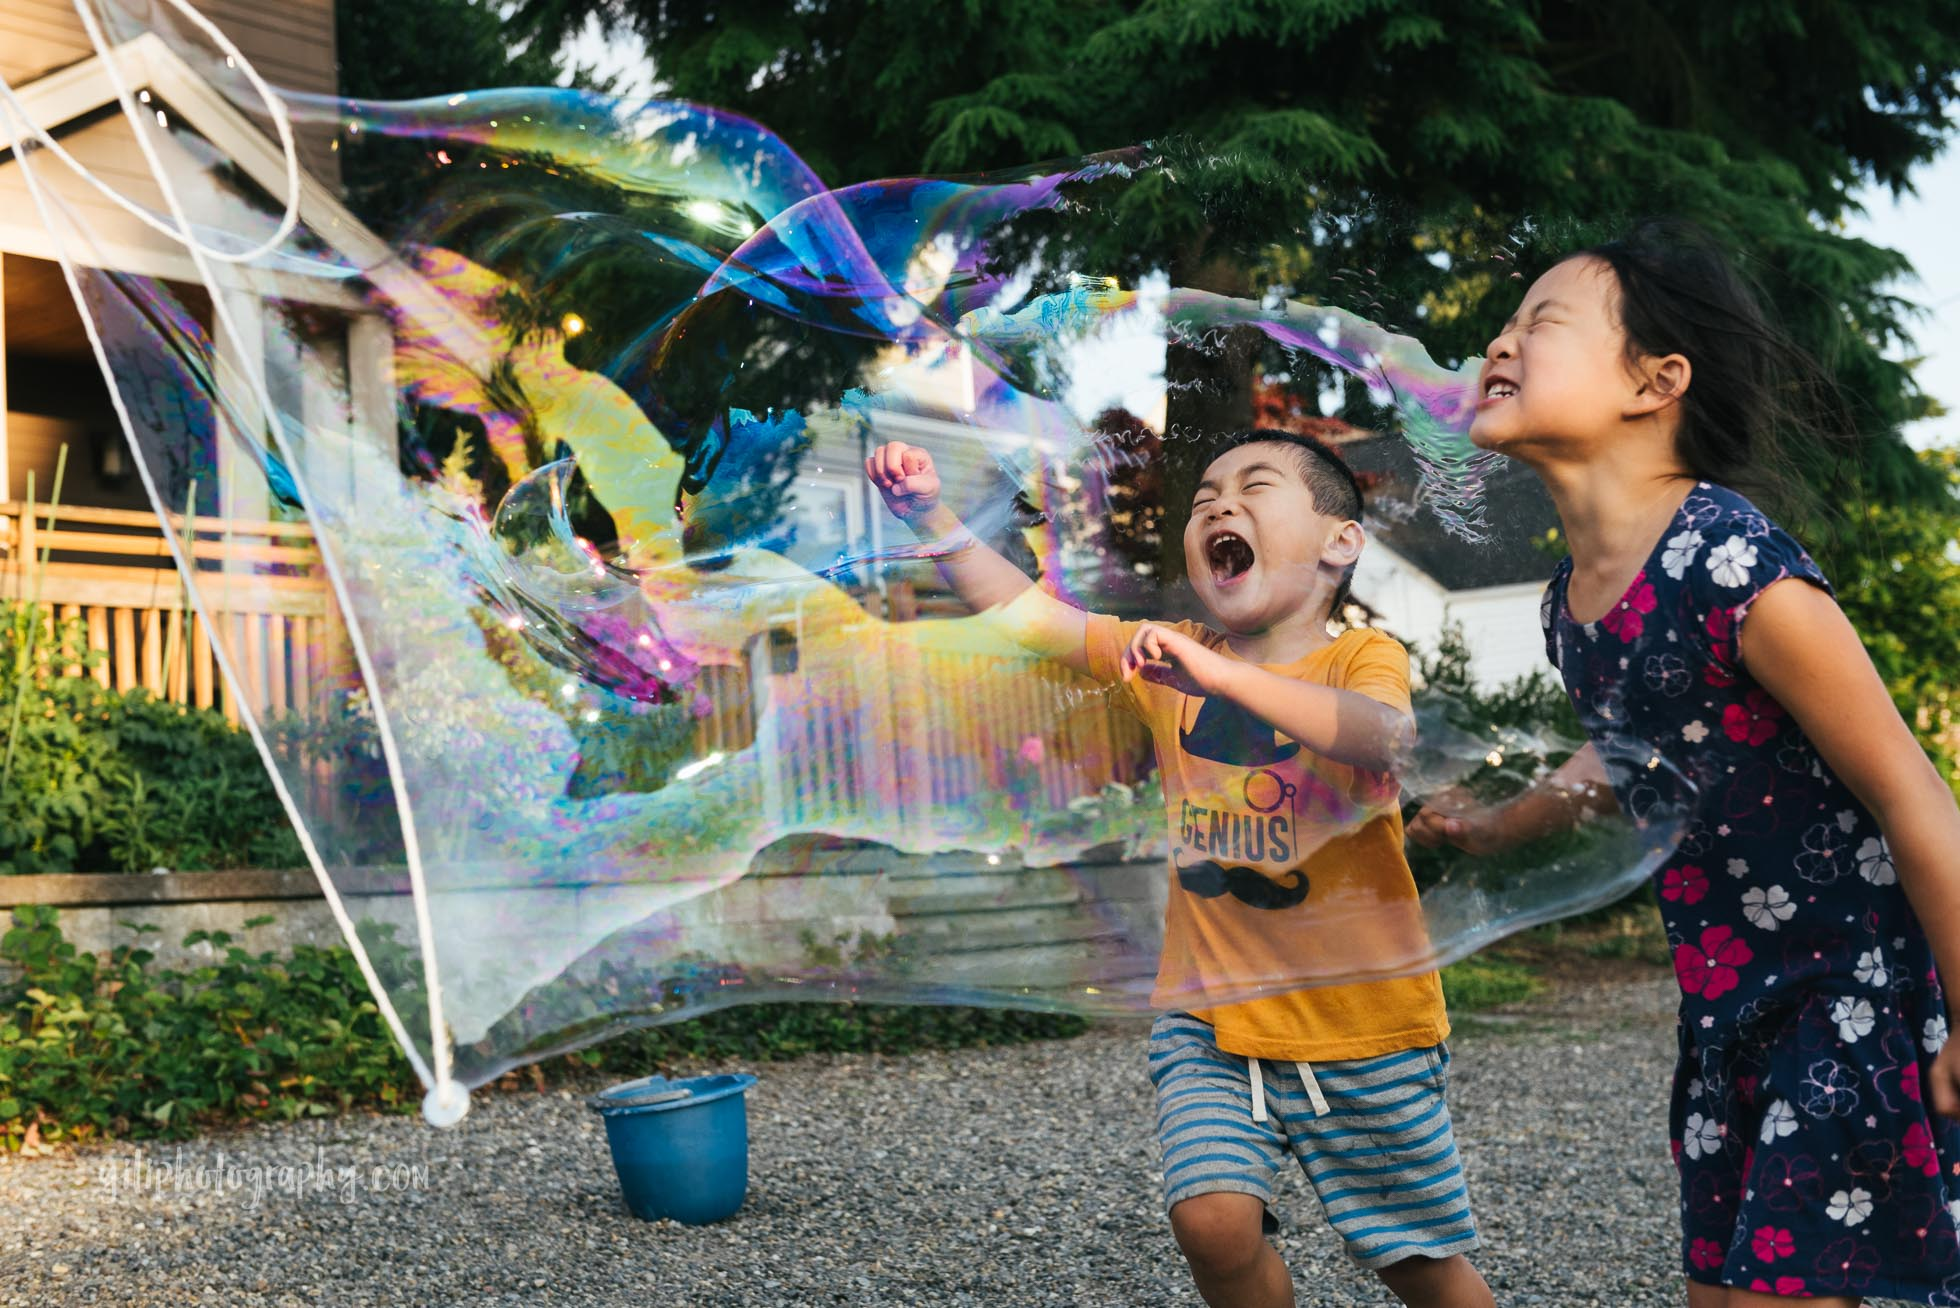 Giant bubble popping in the faces of two children laughing